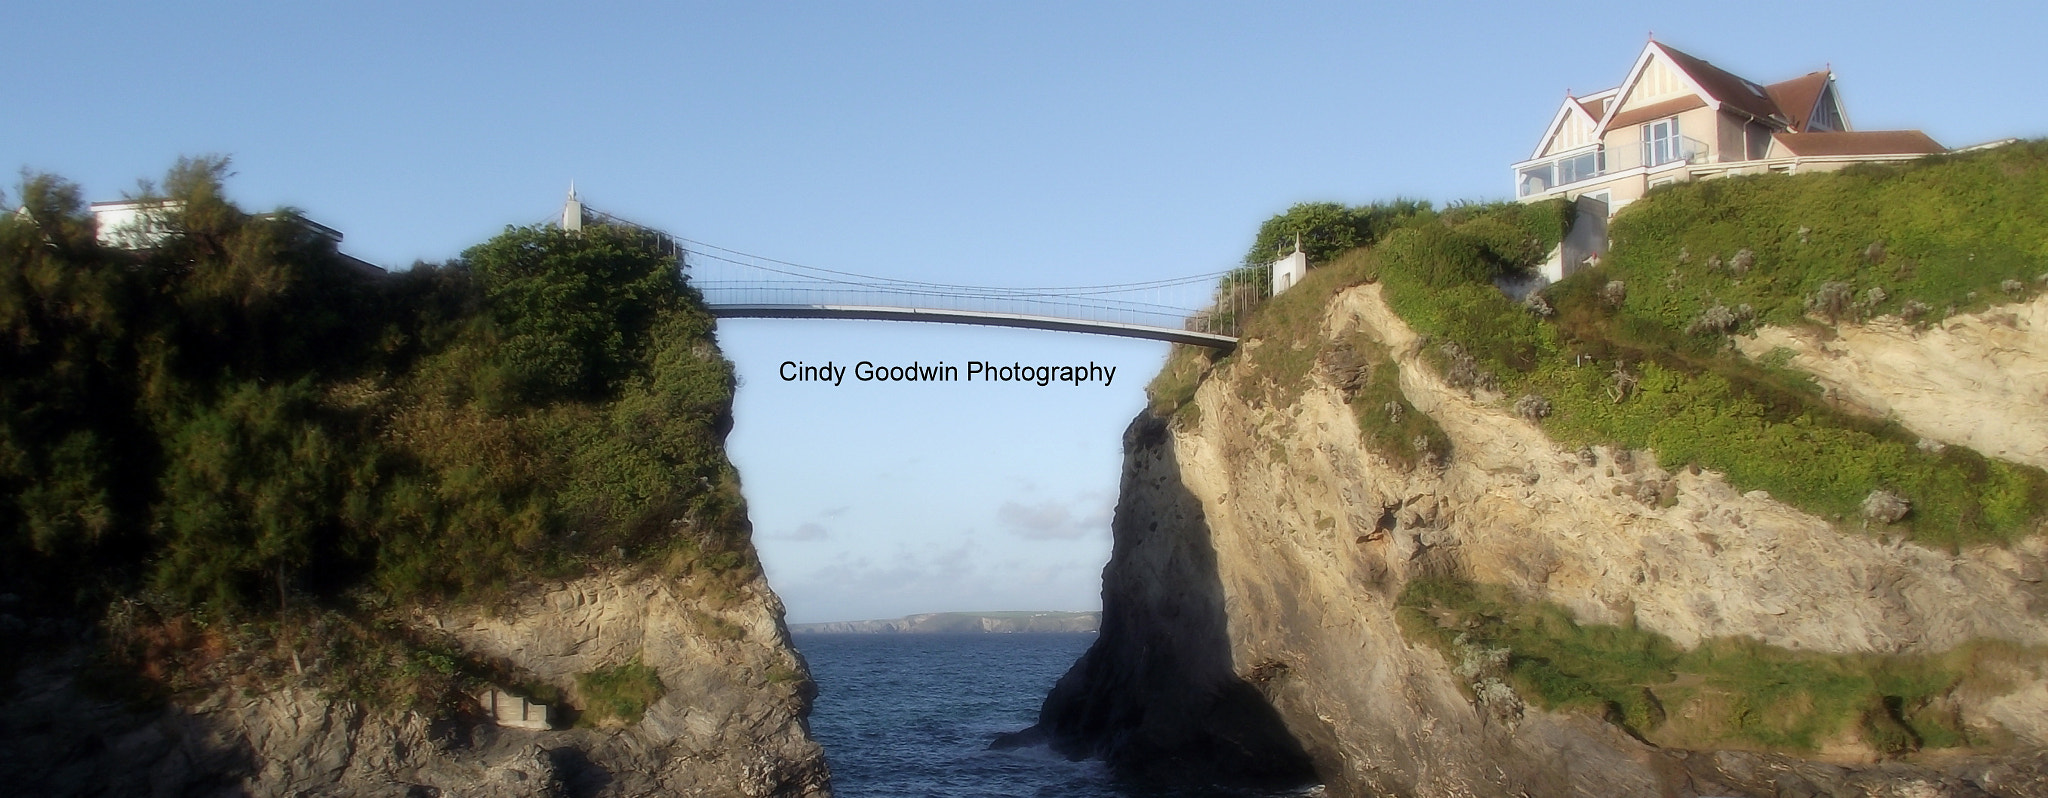 Photograph The Bridge by Cindy Goodwin on 500px